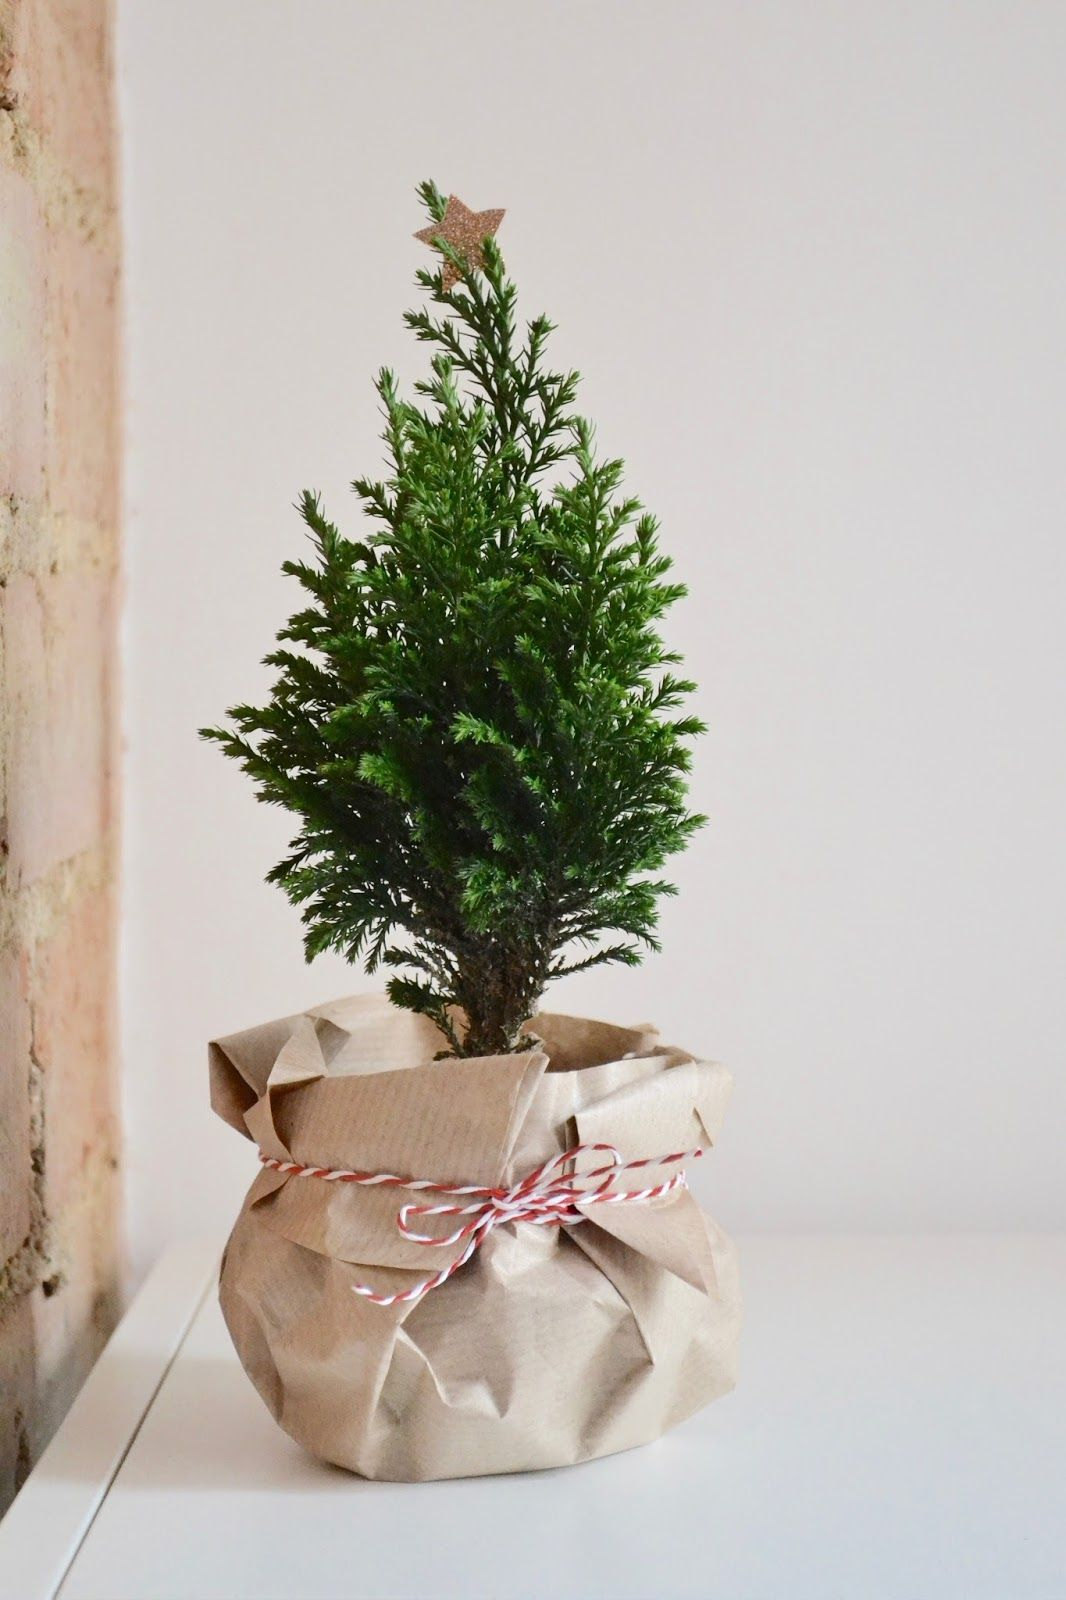 DIY Christmas (With images) Plant gifts, Christmas